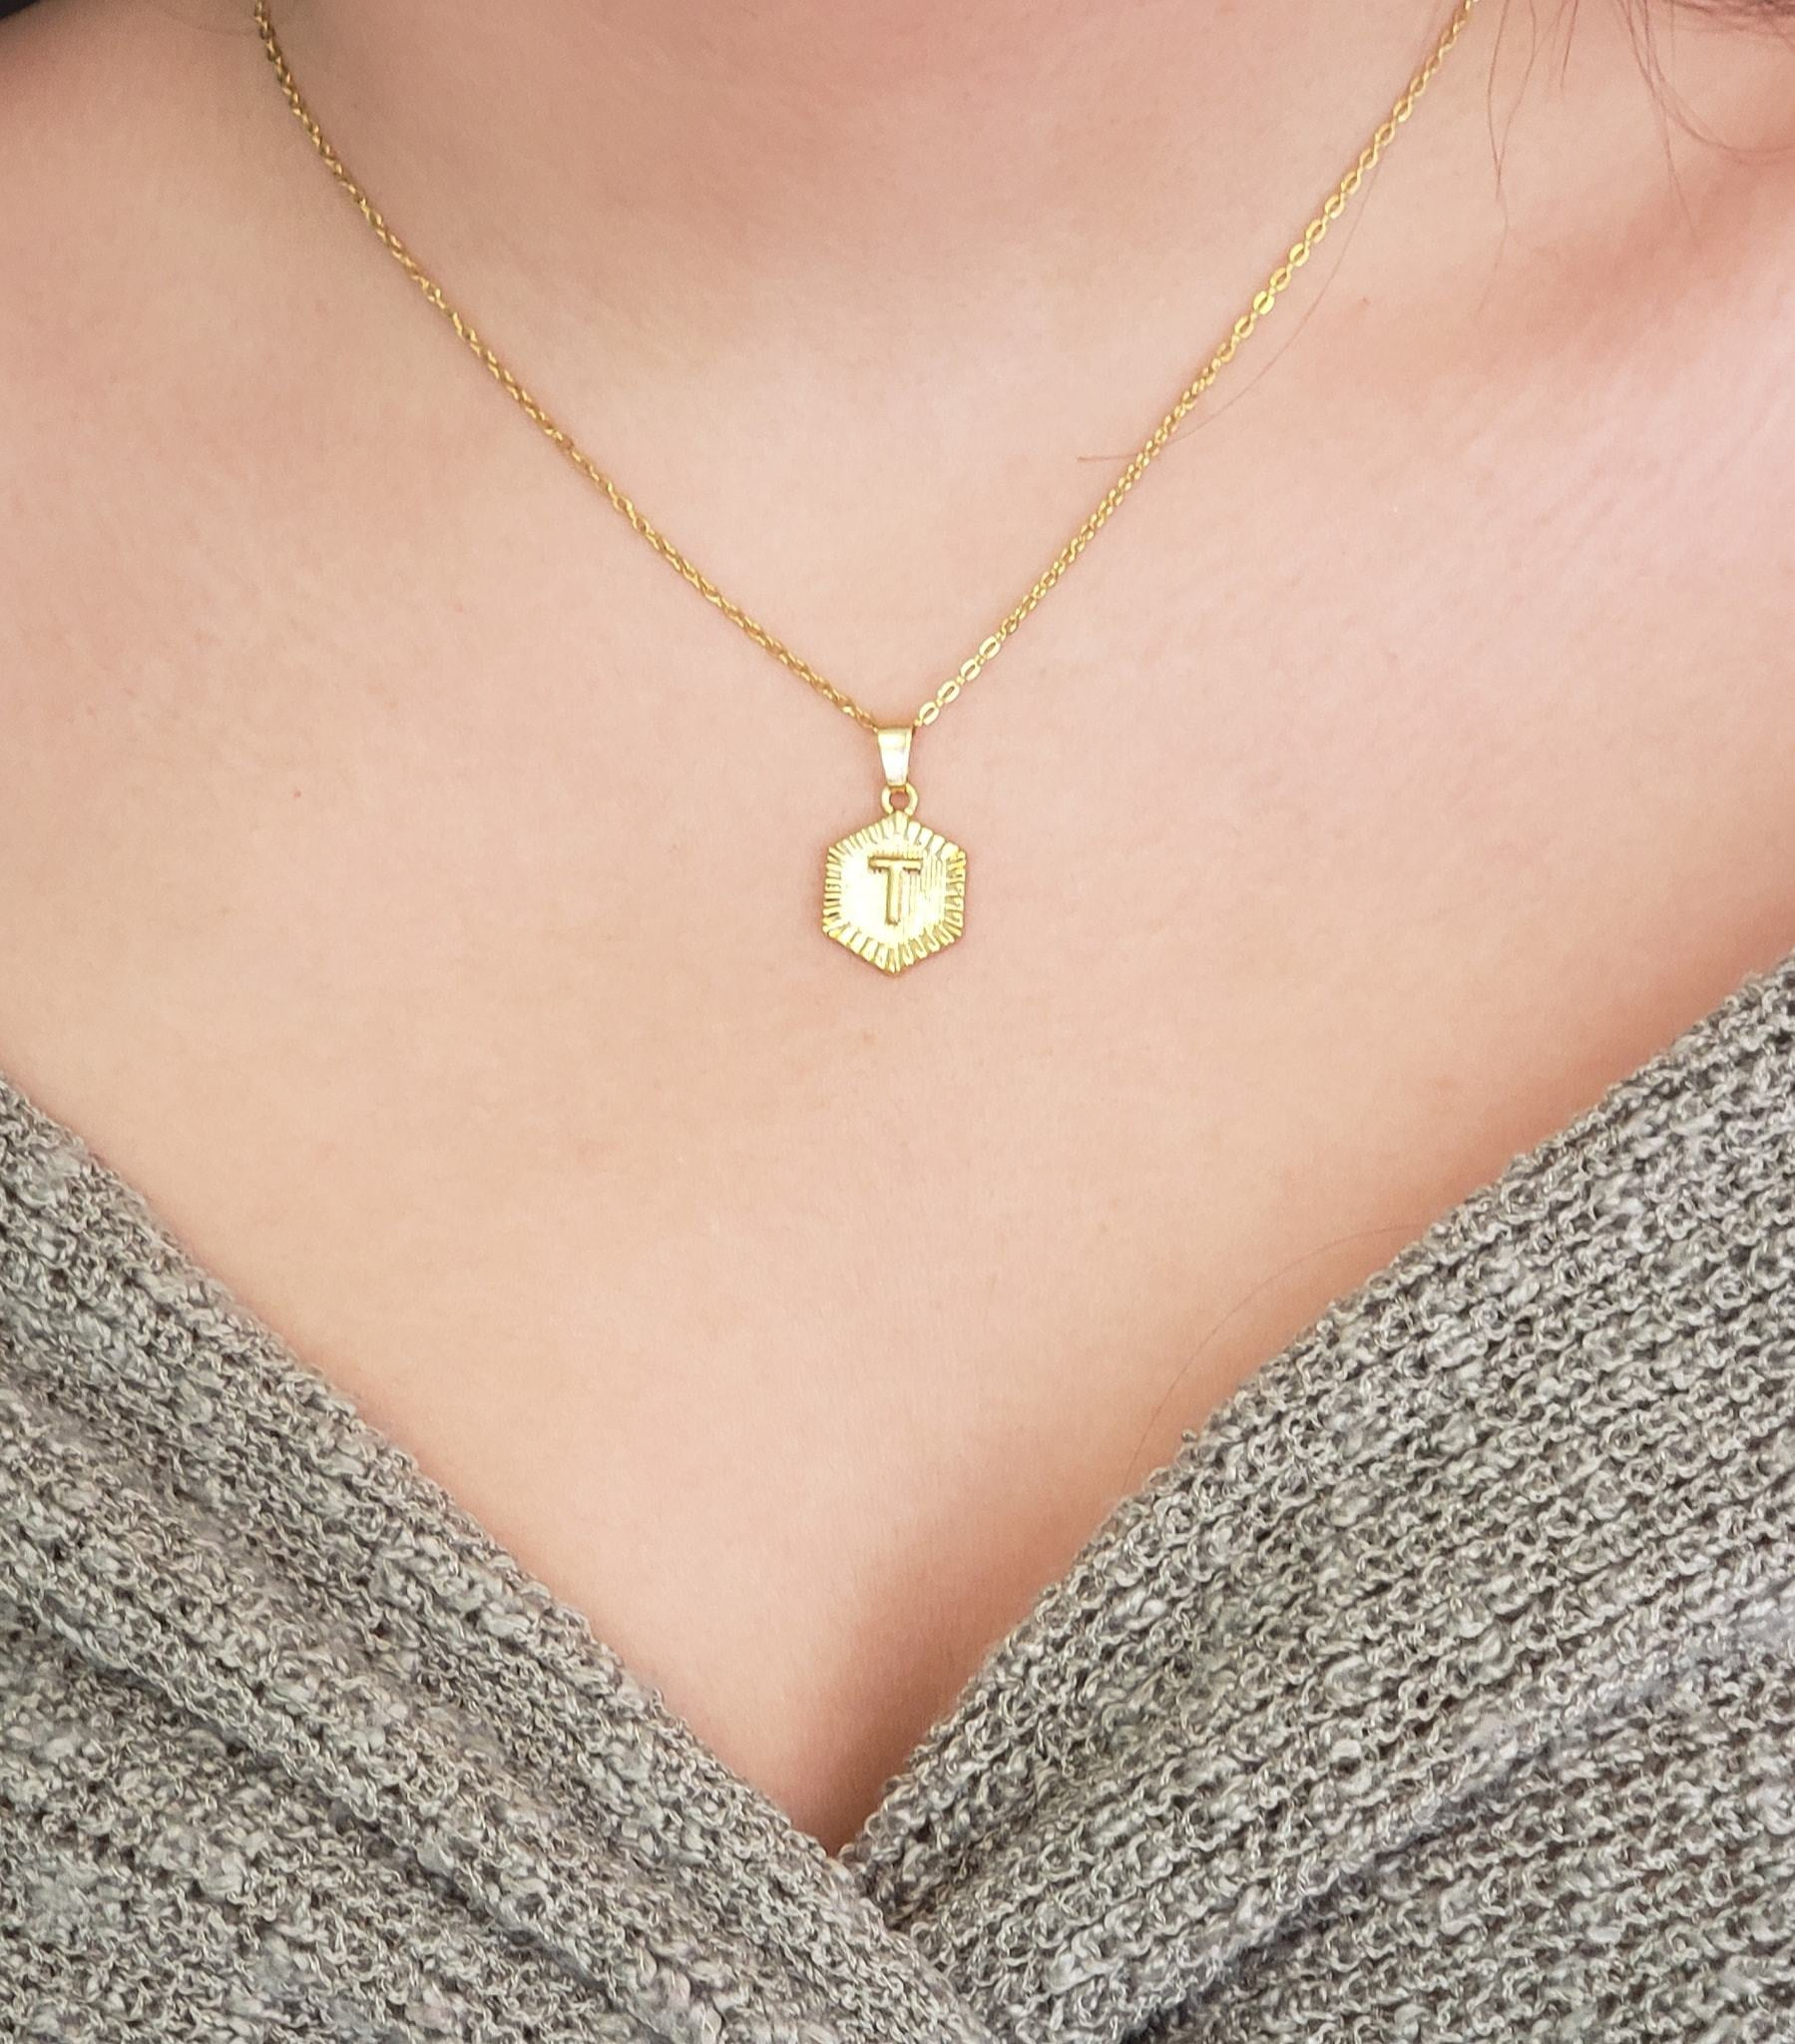 HXINT01 - Hexagon Initial Pendant FIGARO (STERLING WITH GOLD PLATING CHAIN)